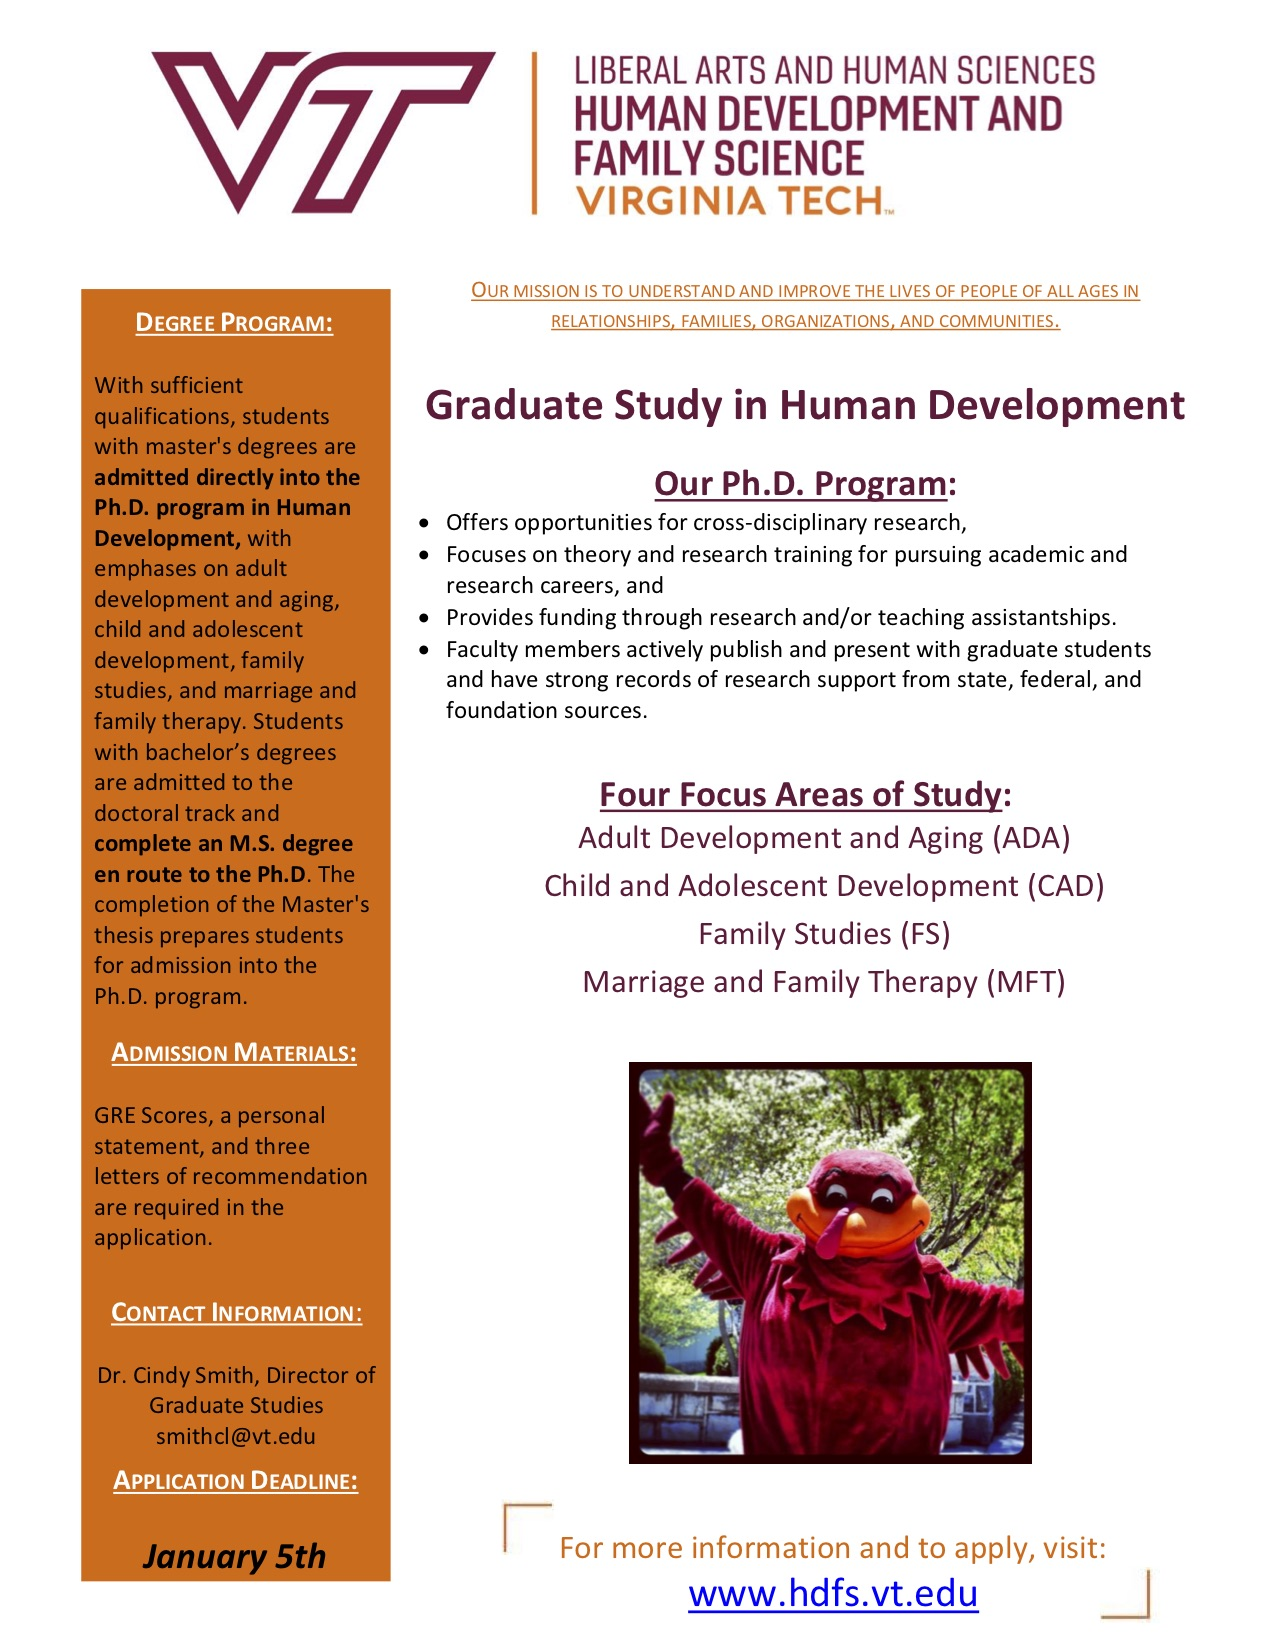 Virginia Tech Human Development Family Science Brochure